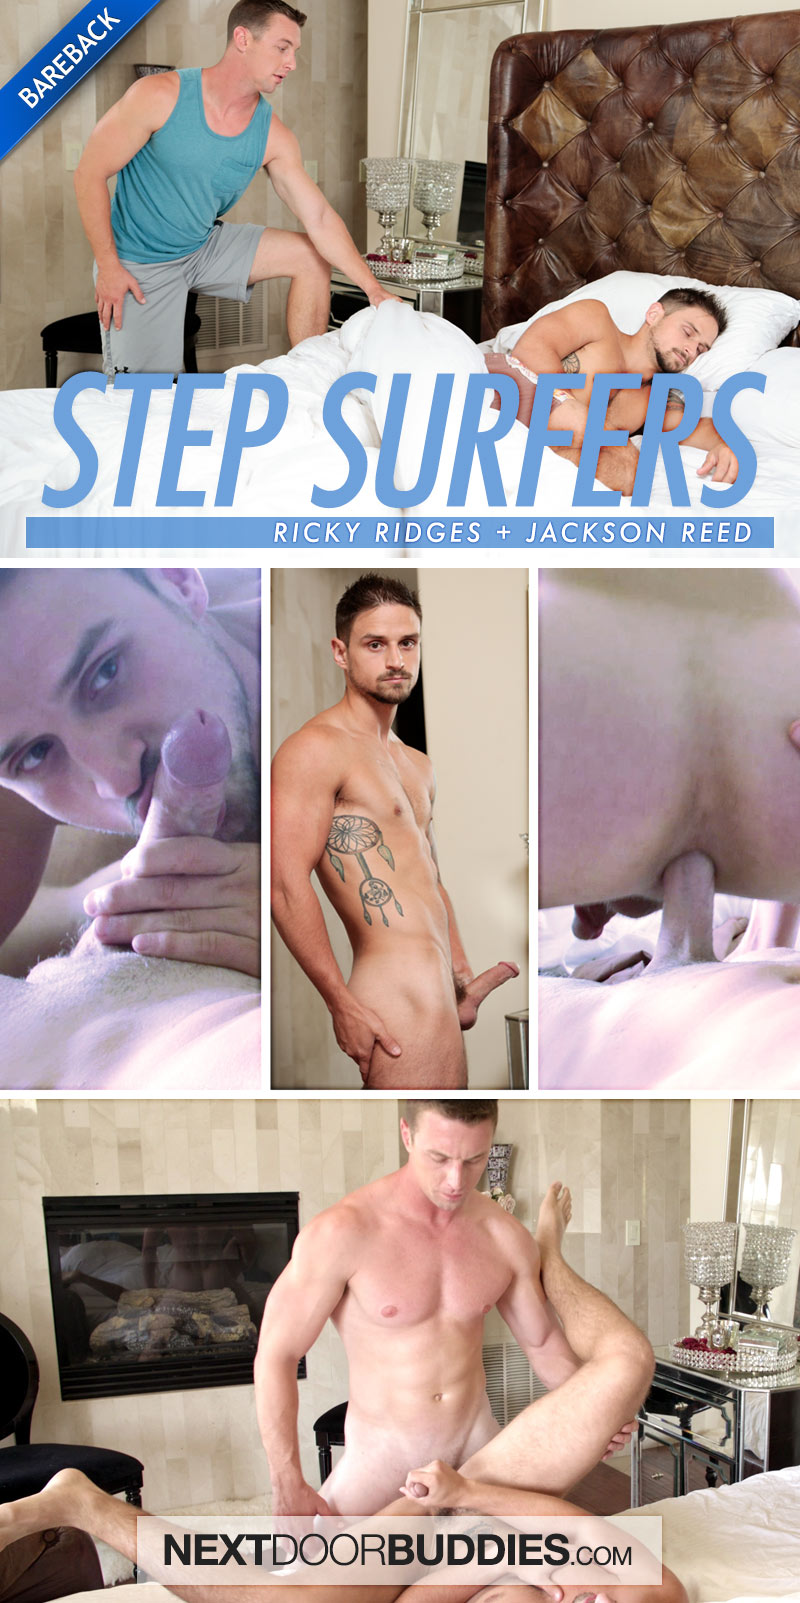 Step Surfers (Ricky Ridges Fucks Jackson Reed) at Next Door Buddies